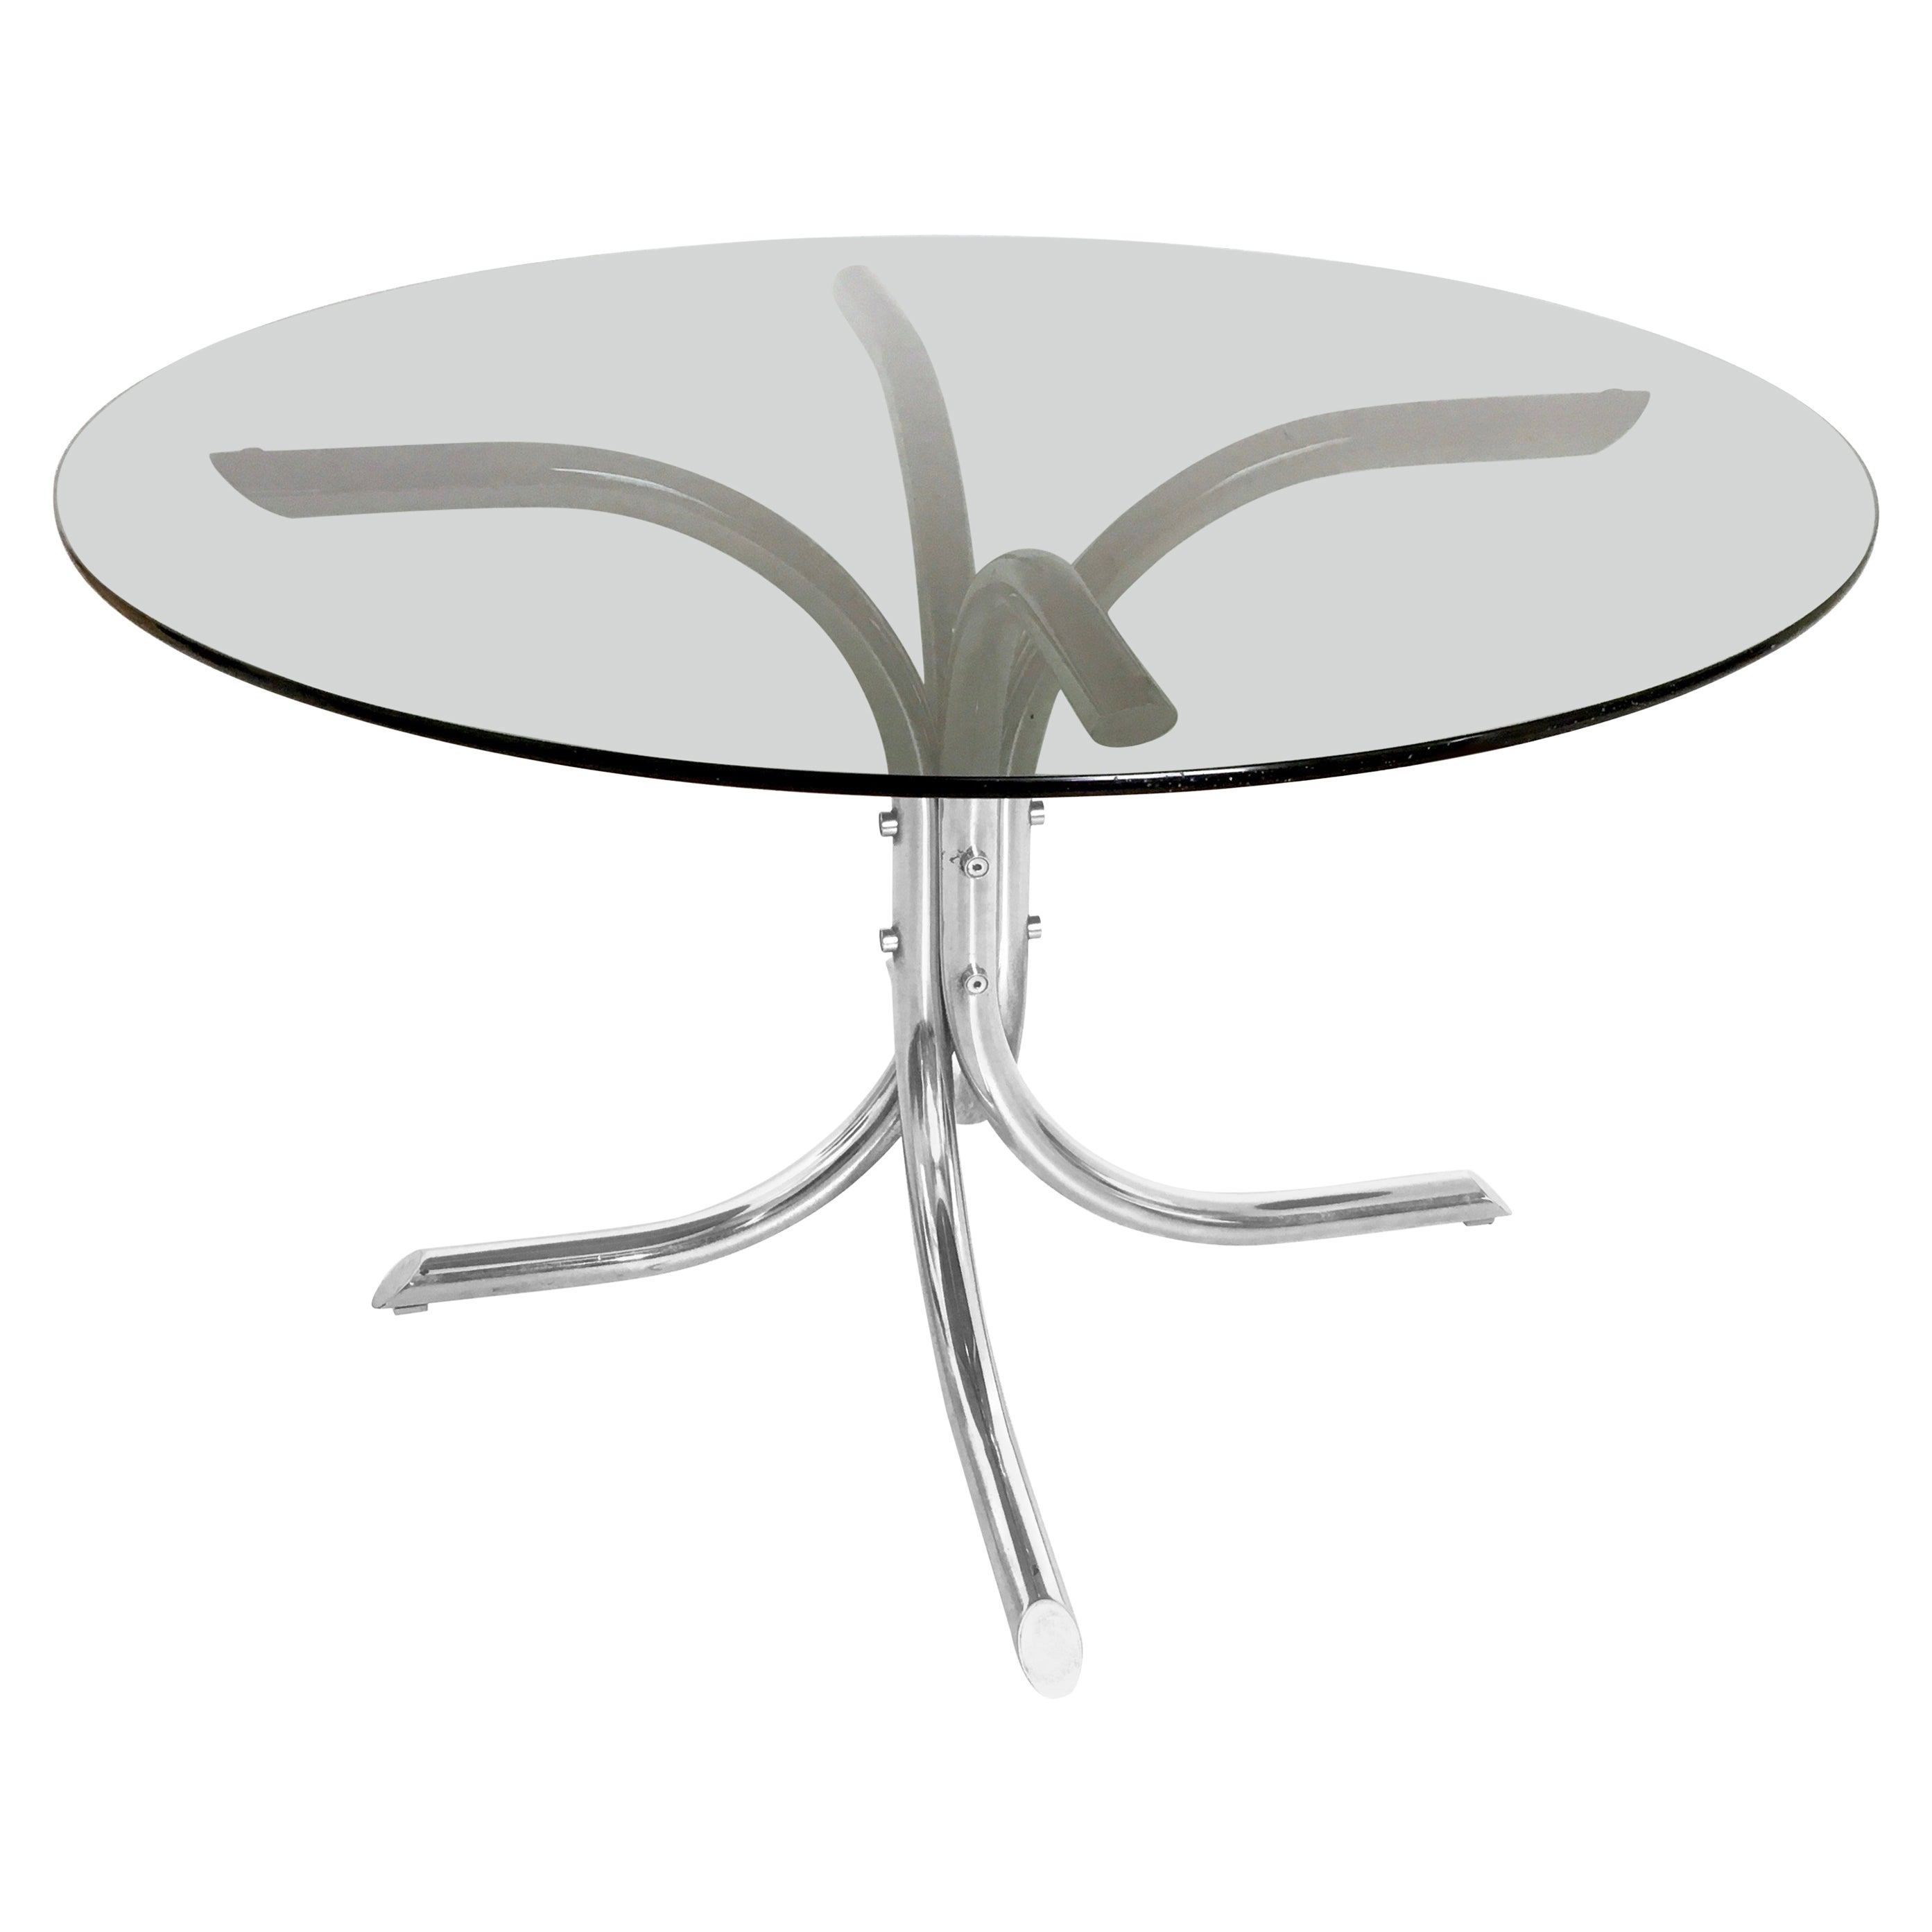 Chromed Metal and Smoked Glass Dining Table, Italy, 1970s